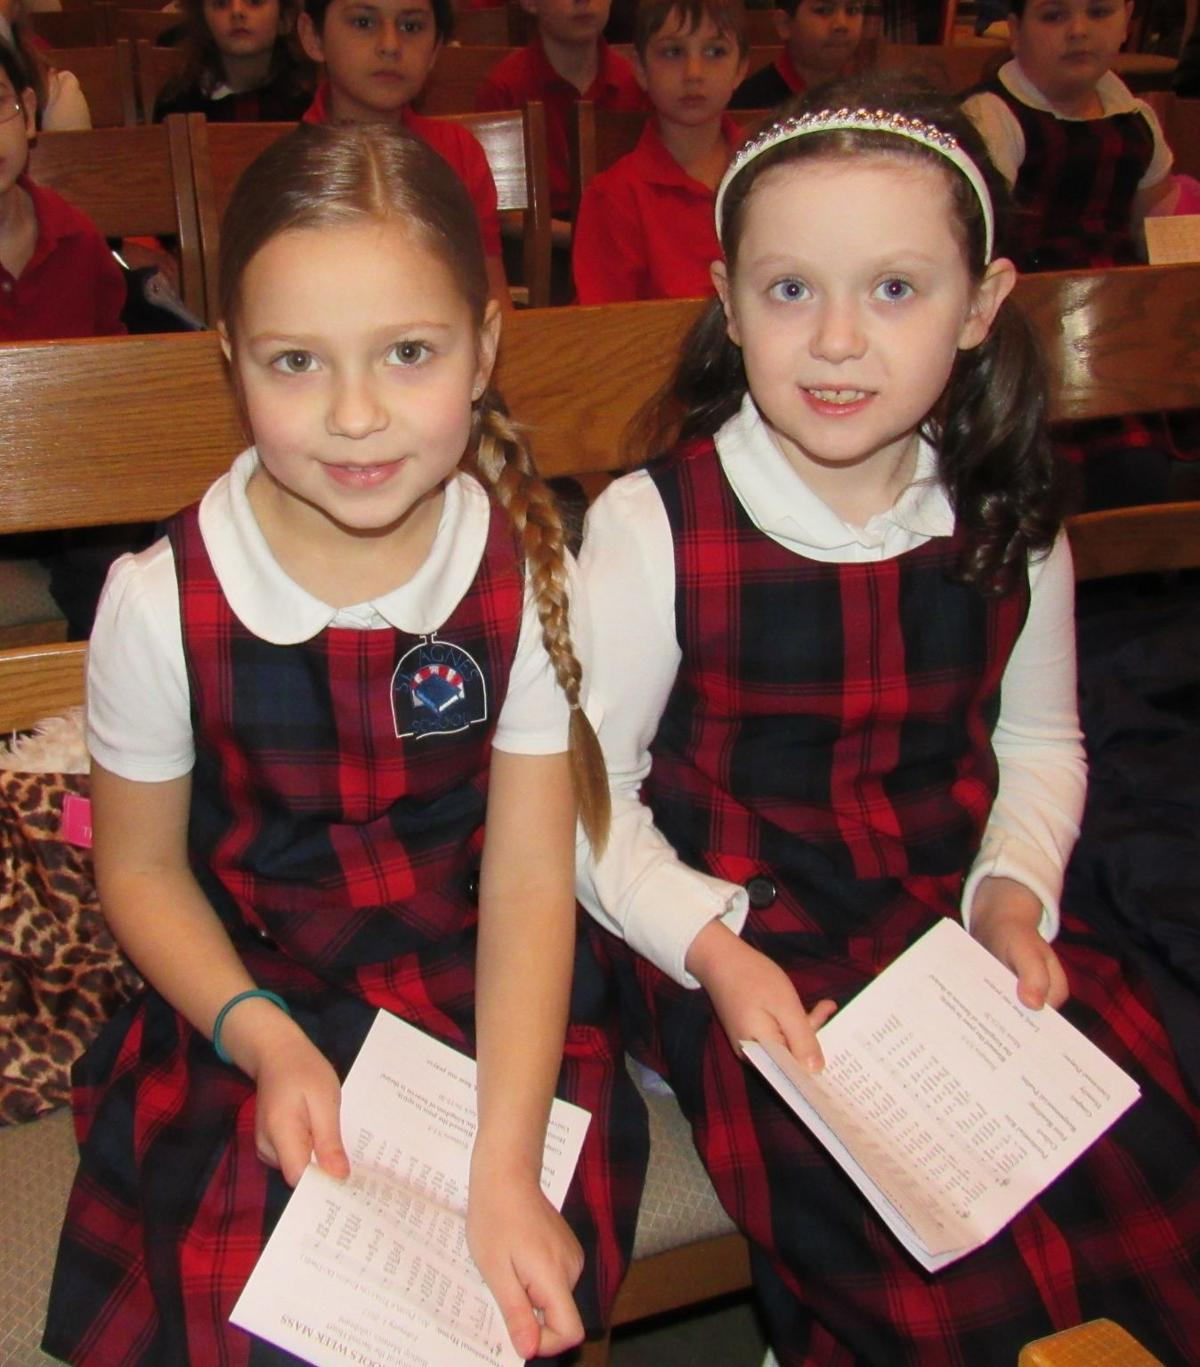 Two St. Agnes students